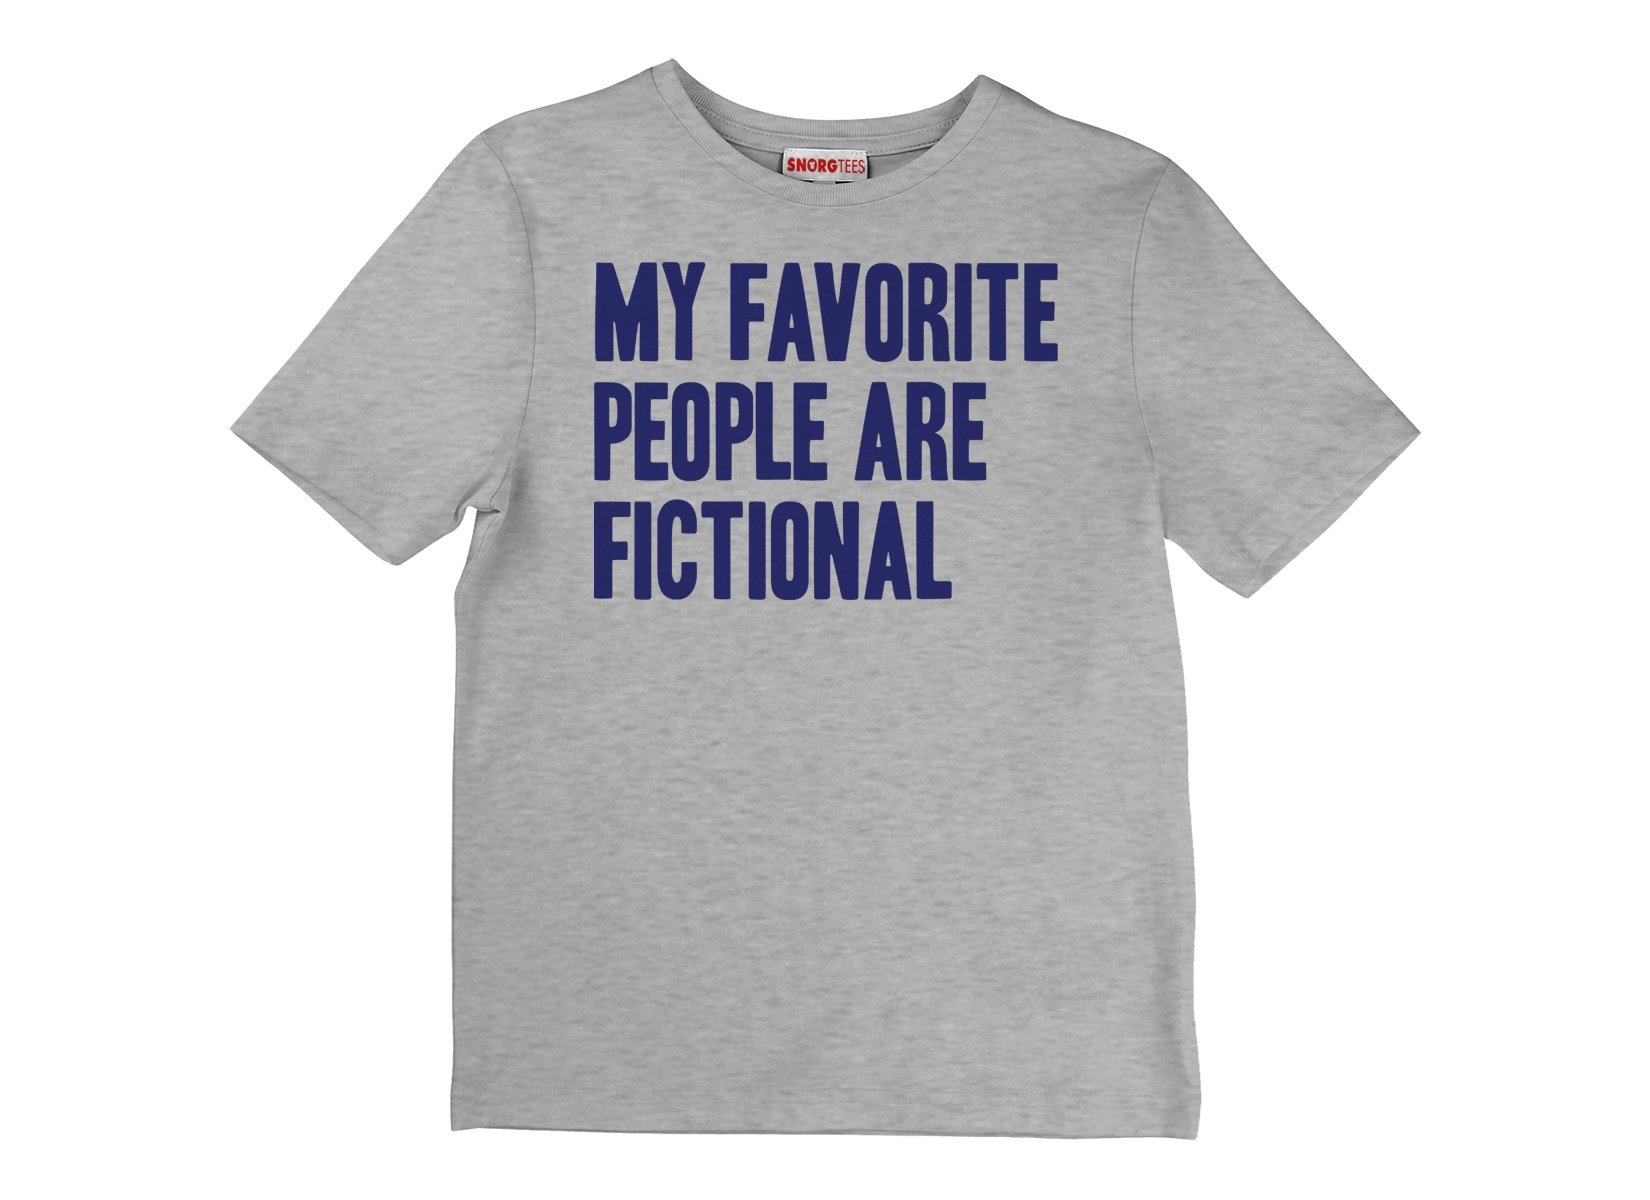 My Favorite People Are Fictional on Kids T-Shirt